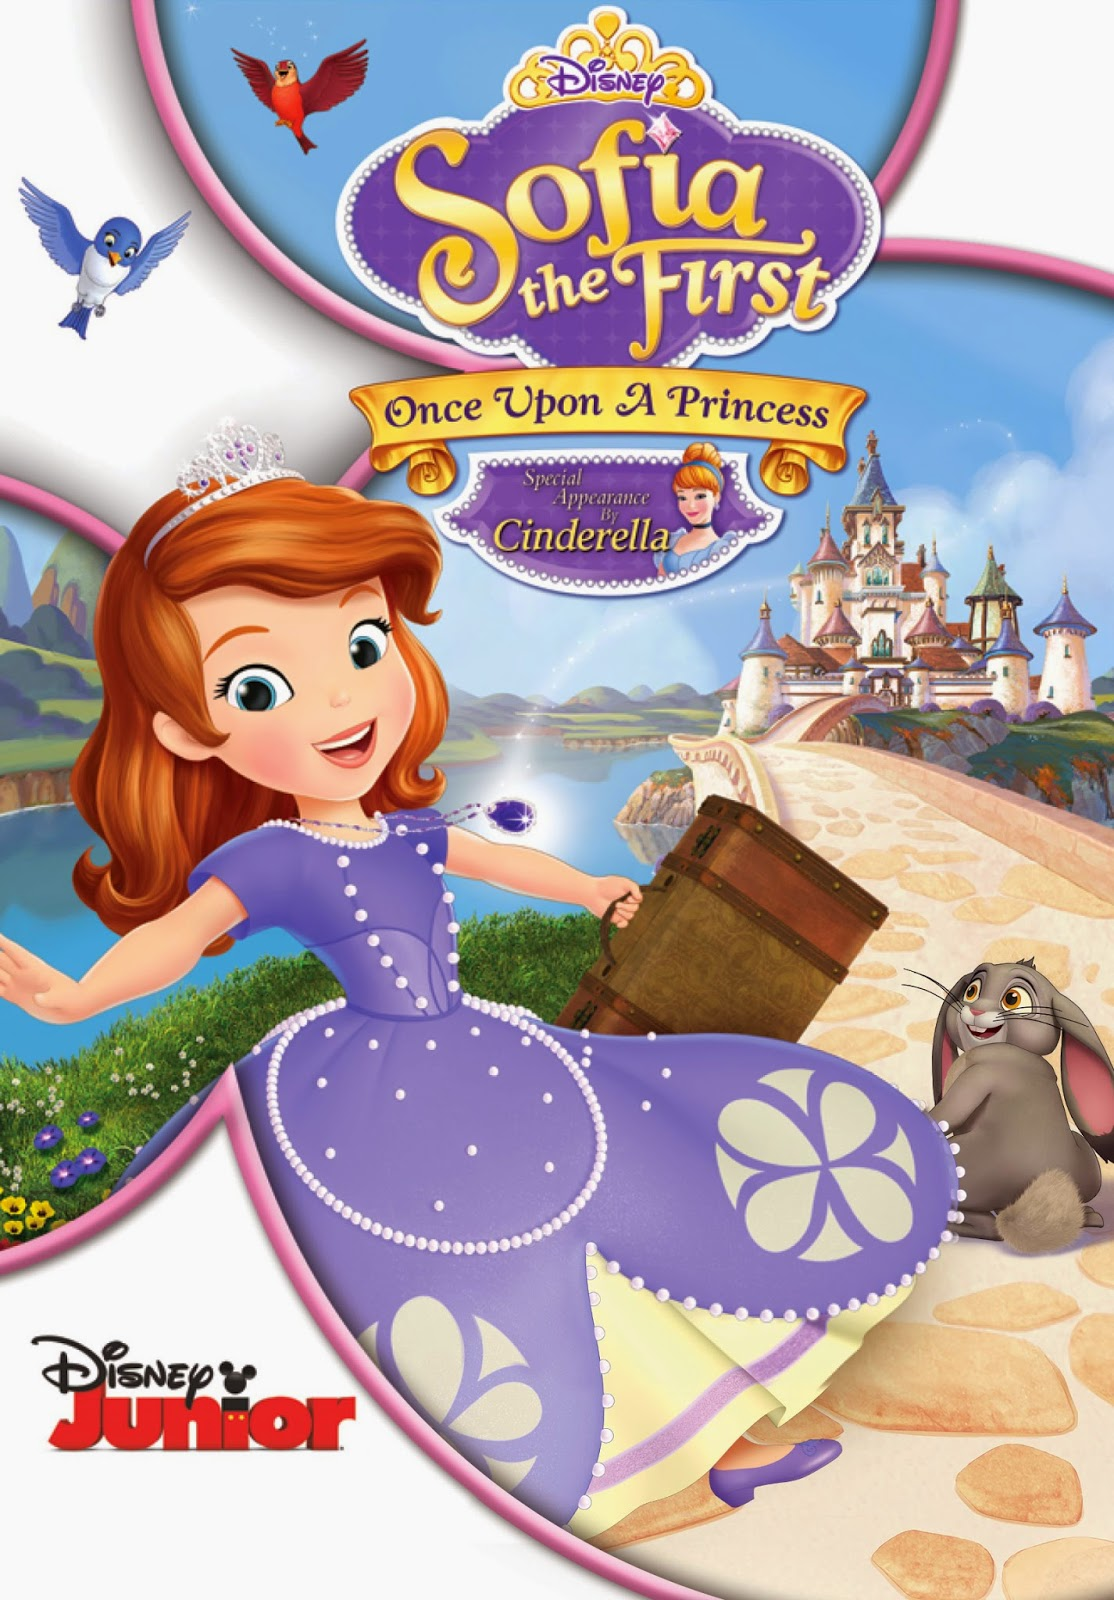 Watch sofia the first once upon a princess 2012 movie full online